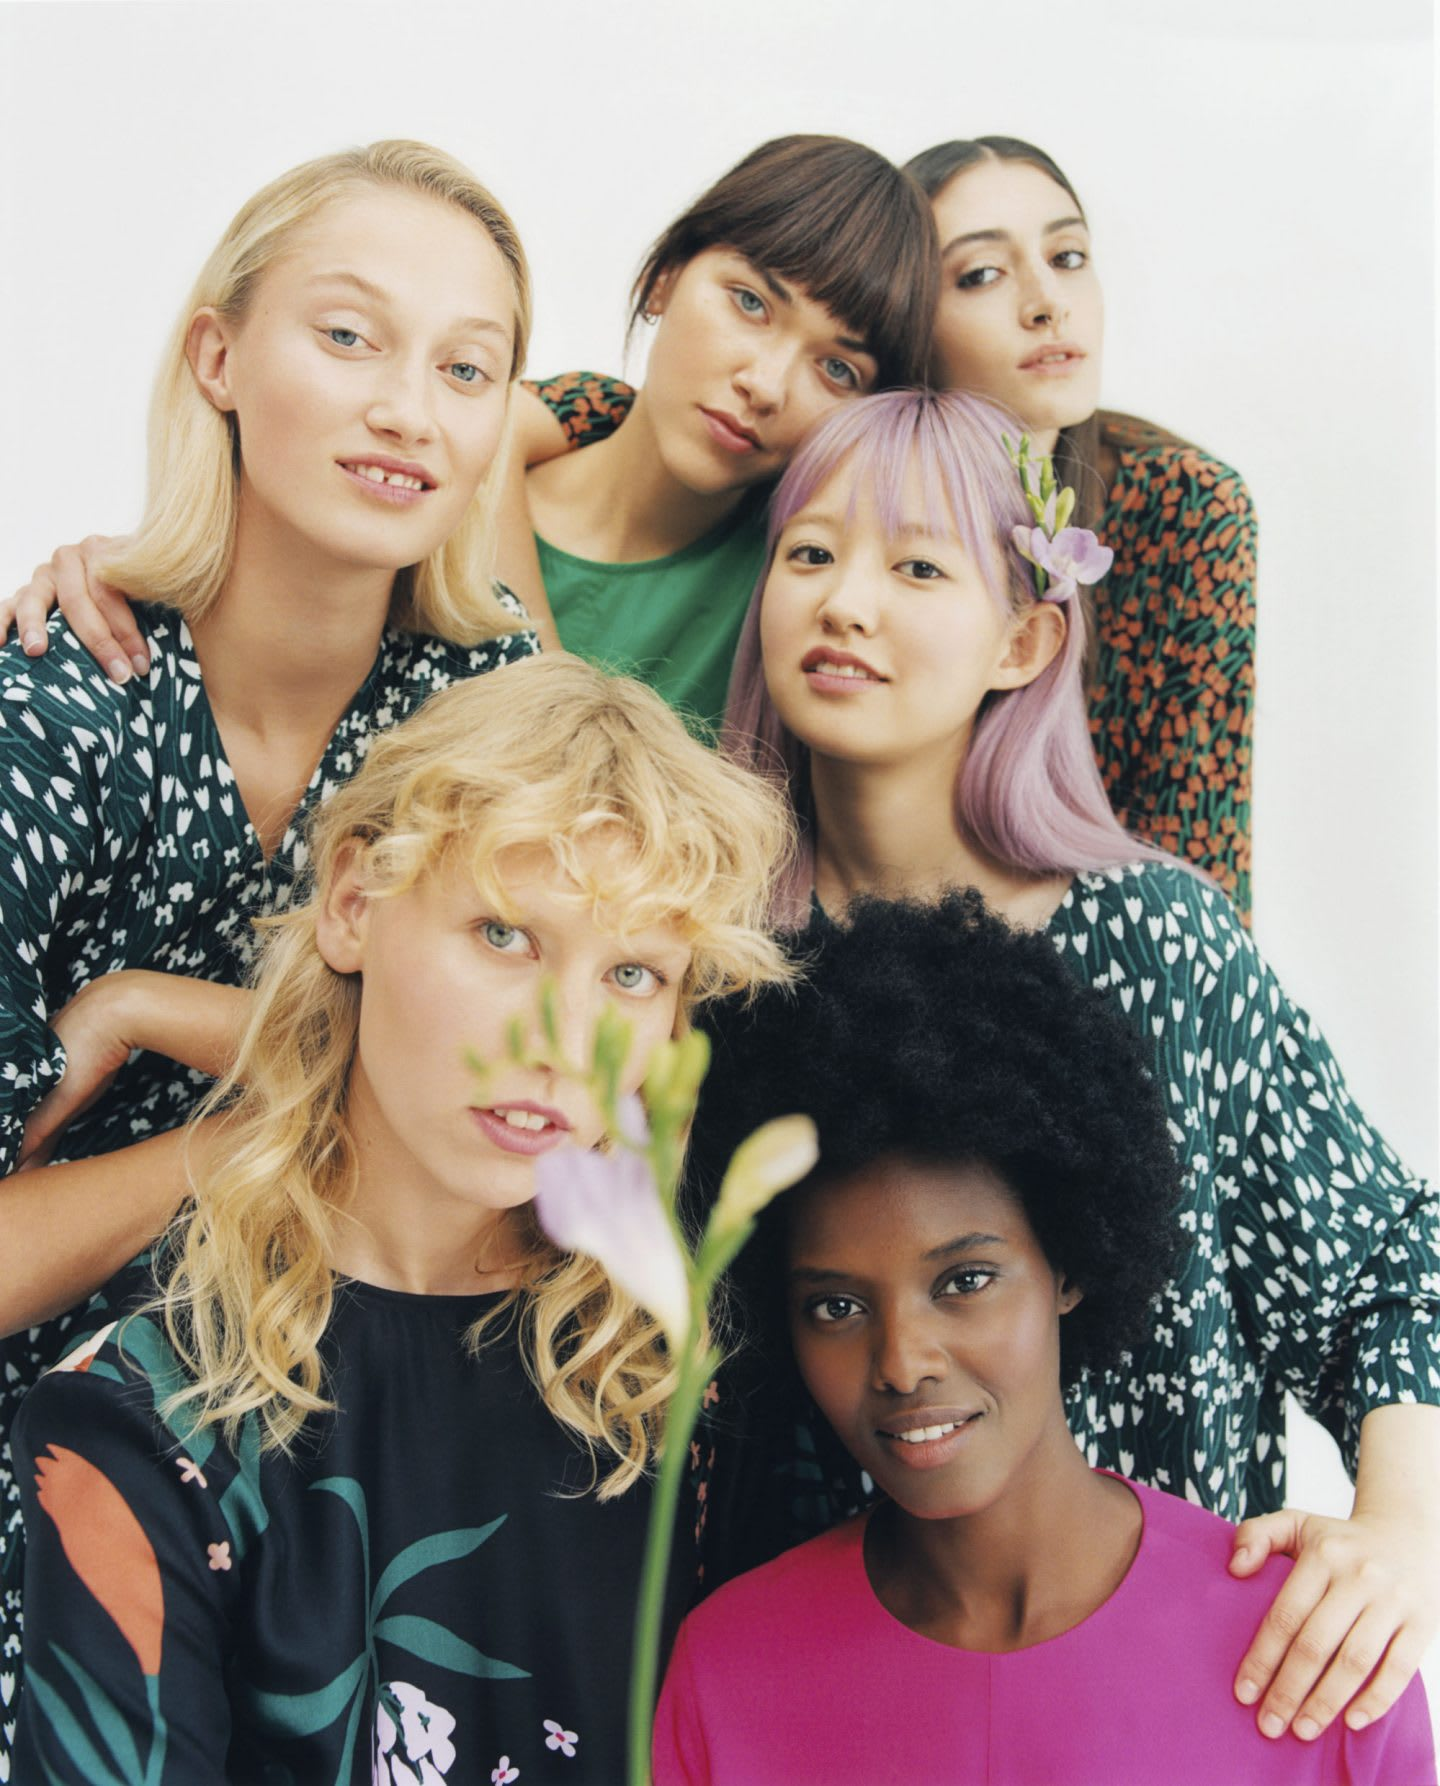 Shooting with Marimekko's floral designs and diverse set of models. Marimekko, finish design,